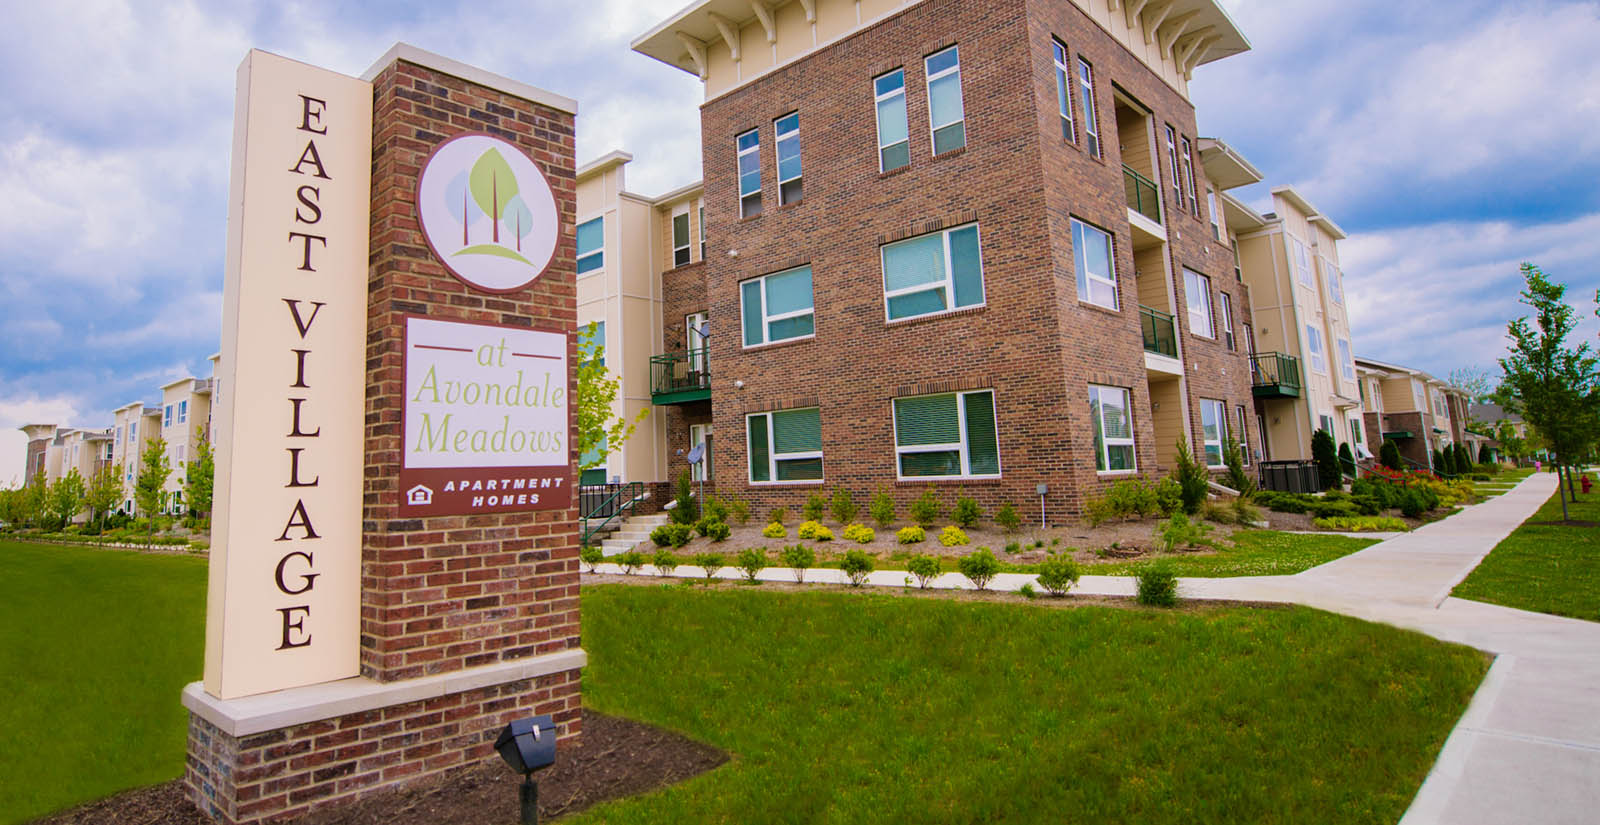 Indianapolis apartments entrance sign